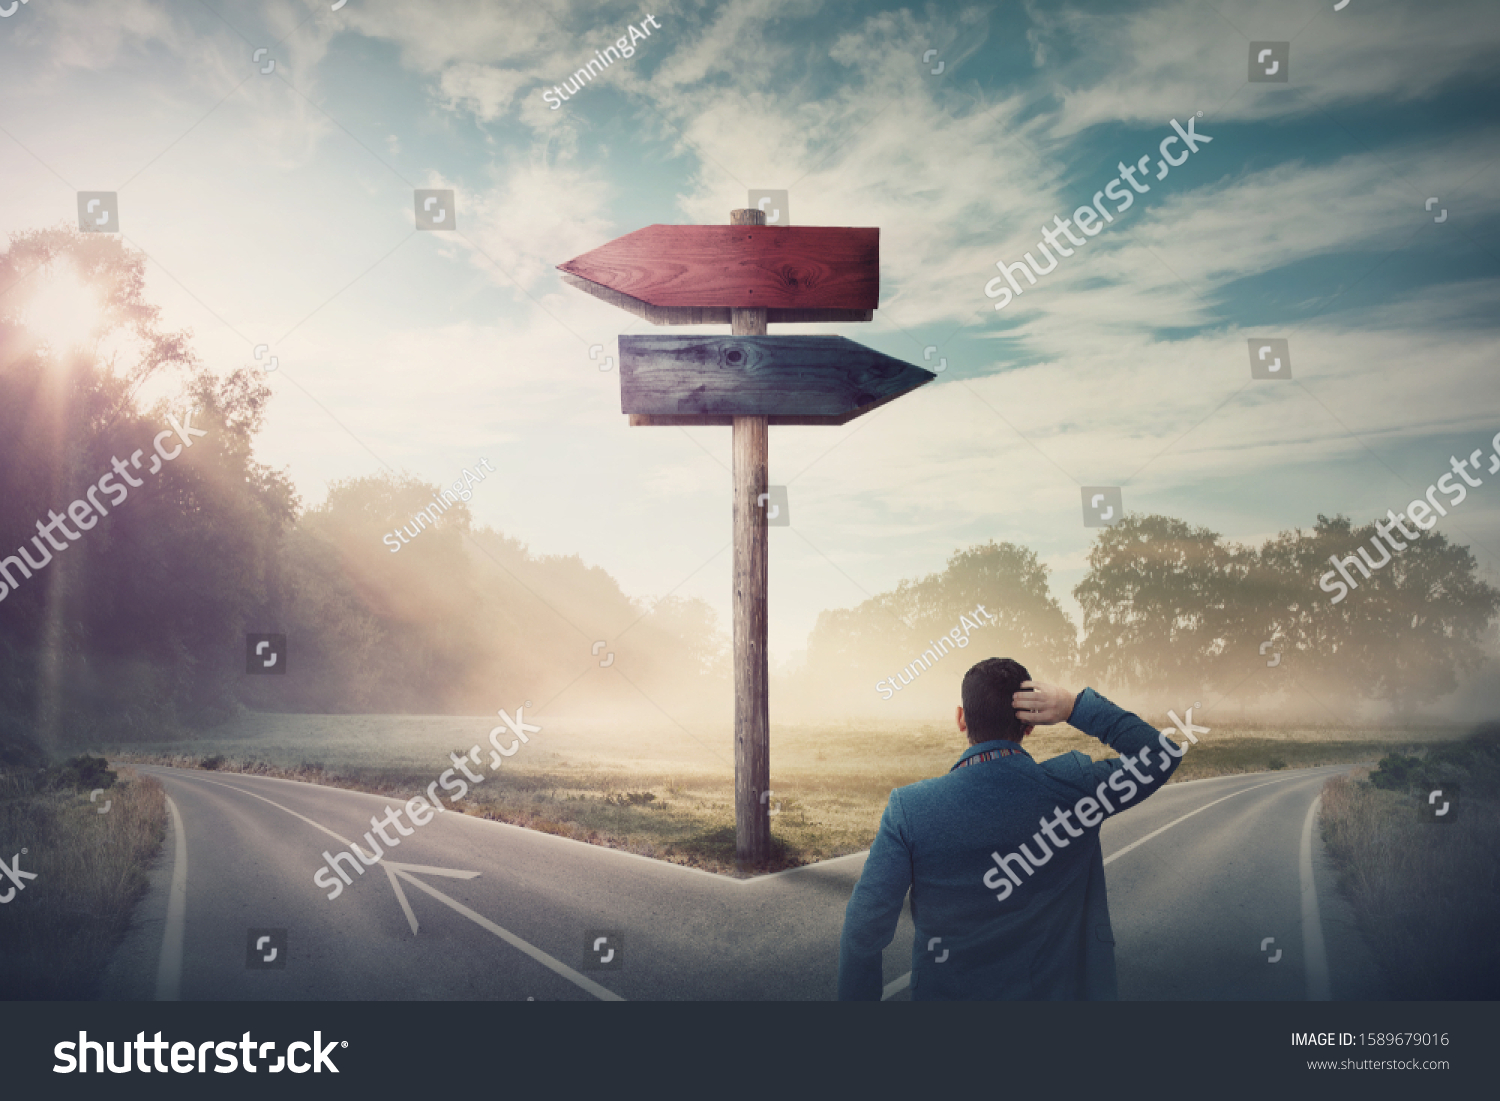 Rear businessman in front of crossroad and signpost arrows shows two different courses, left and right direction to choose. Road splits in distinct direction ways. Difficult decision, choice concept. #1589679016